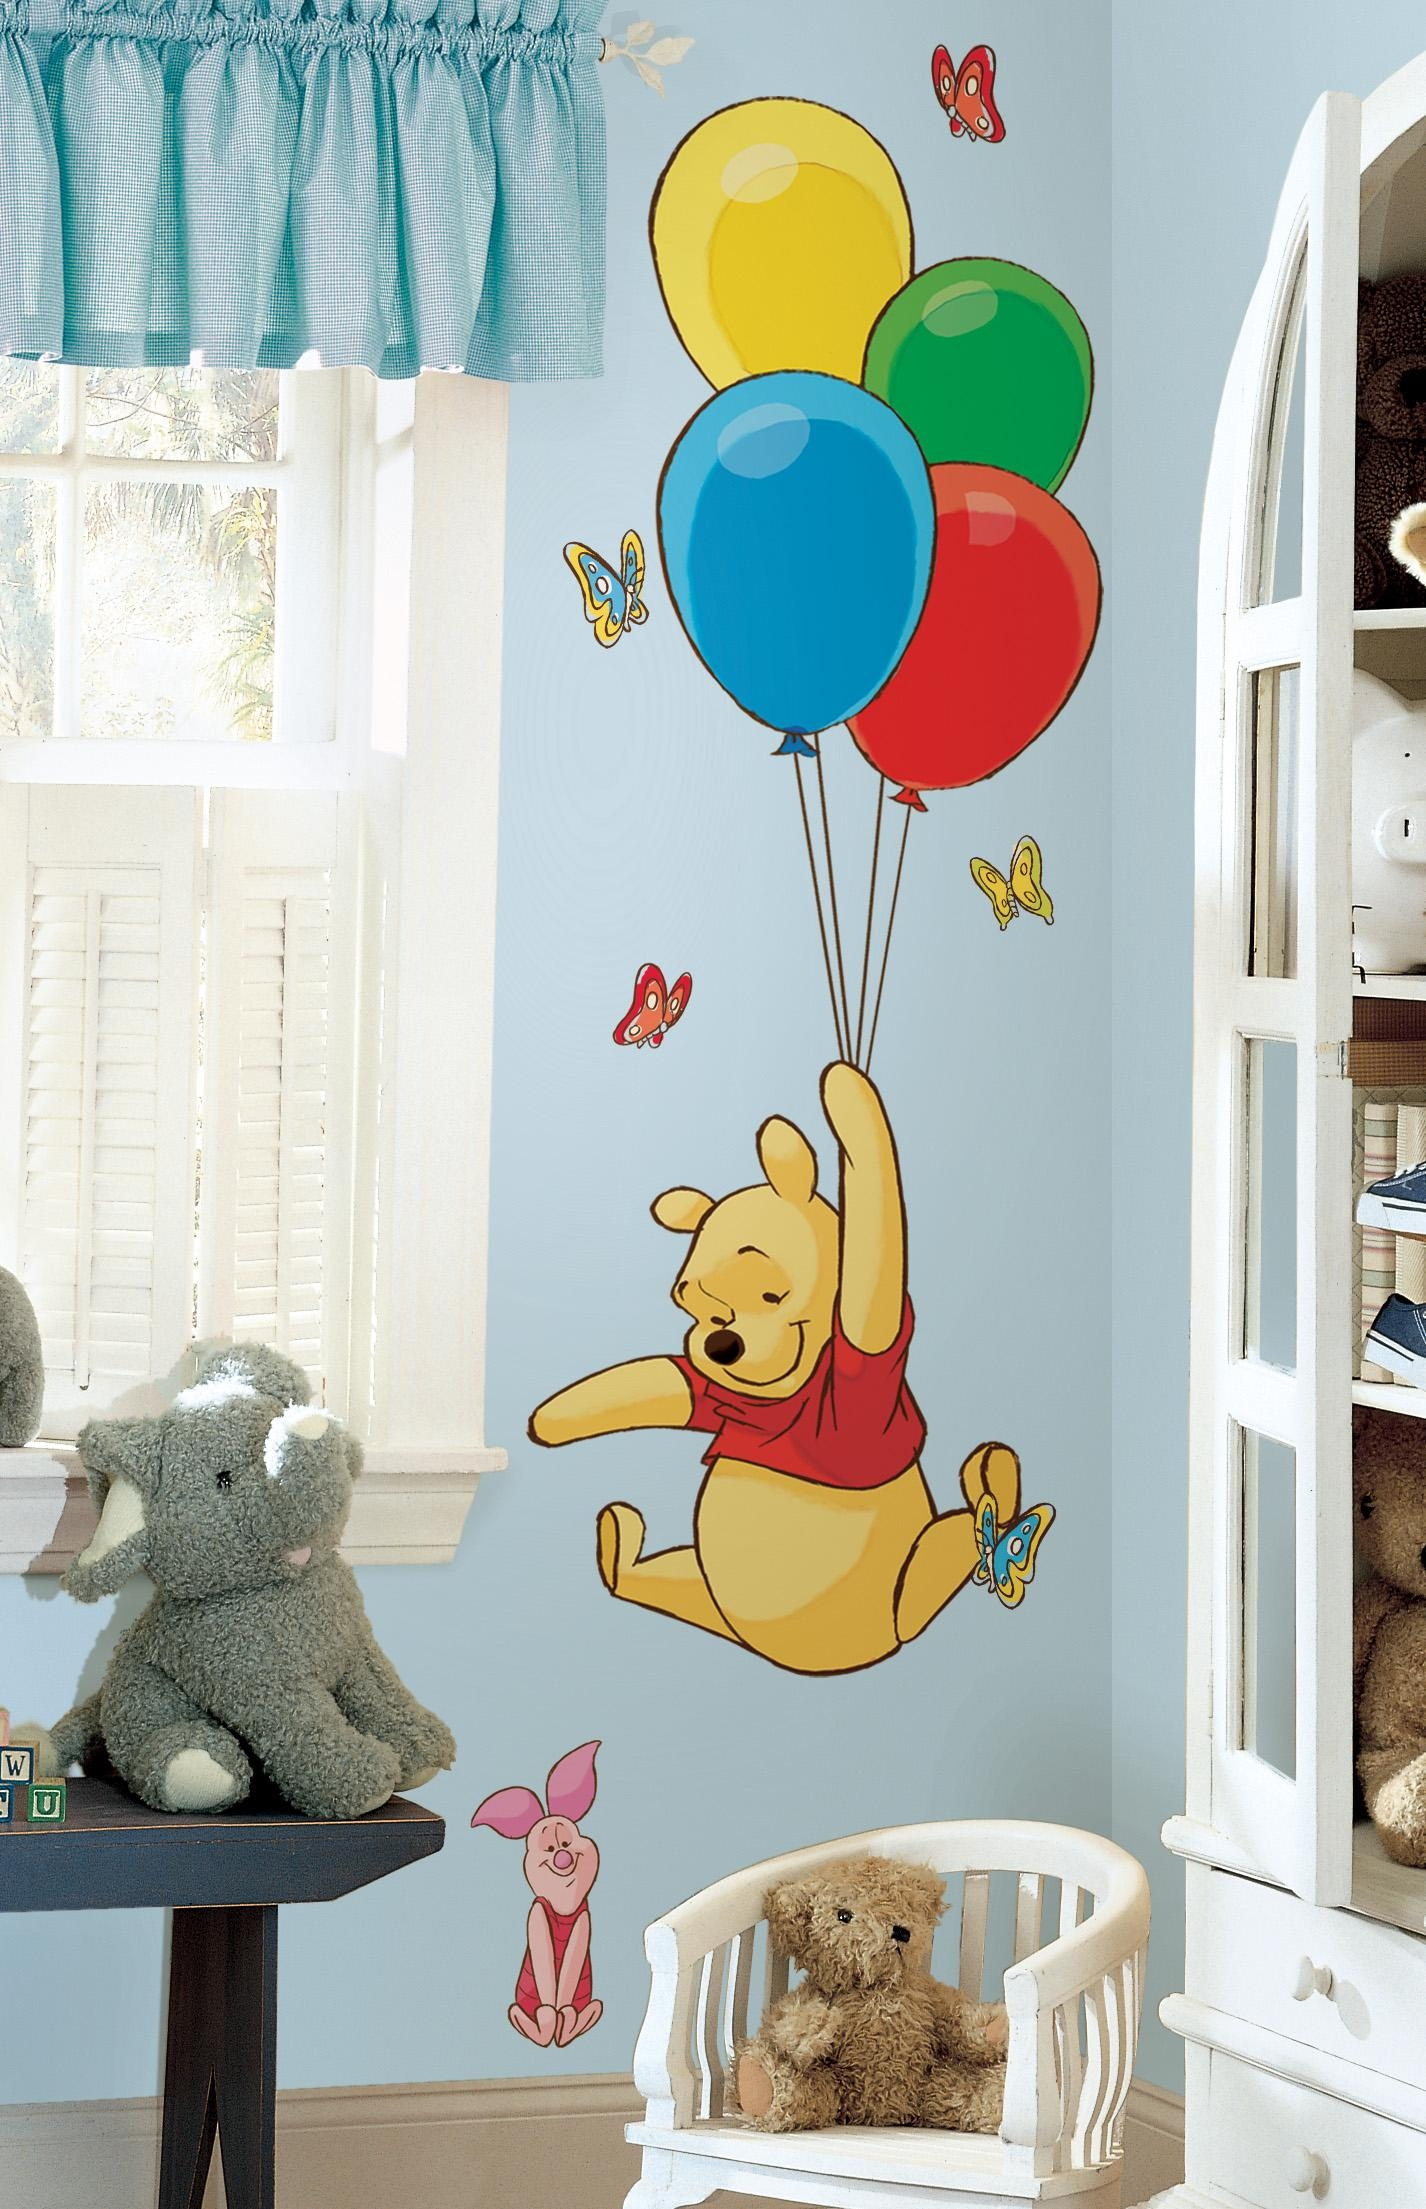 Winnie The Pooh Decor | Colorful Kids Rooms Regarding Winnie The Pooh Wall Art For Nursery (View 4 of 20)